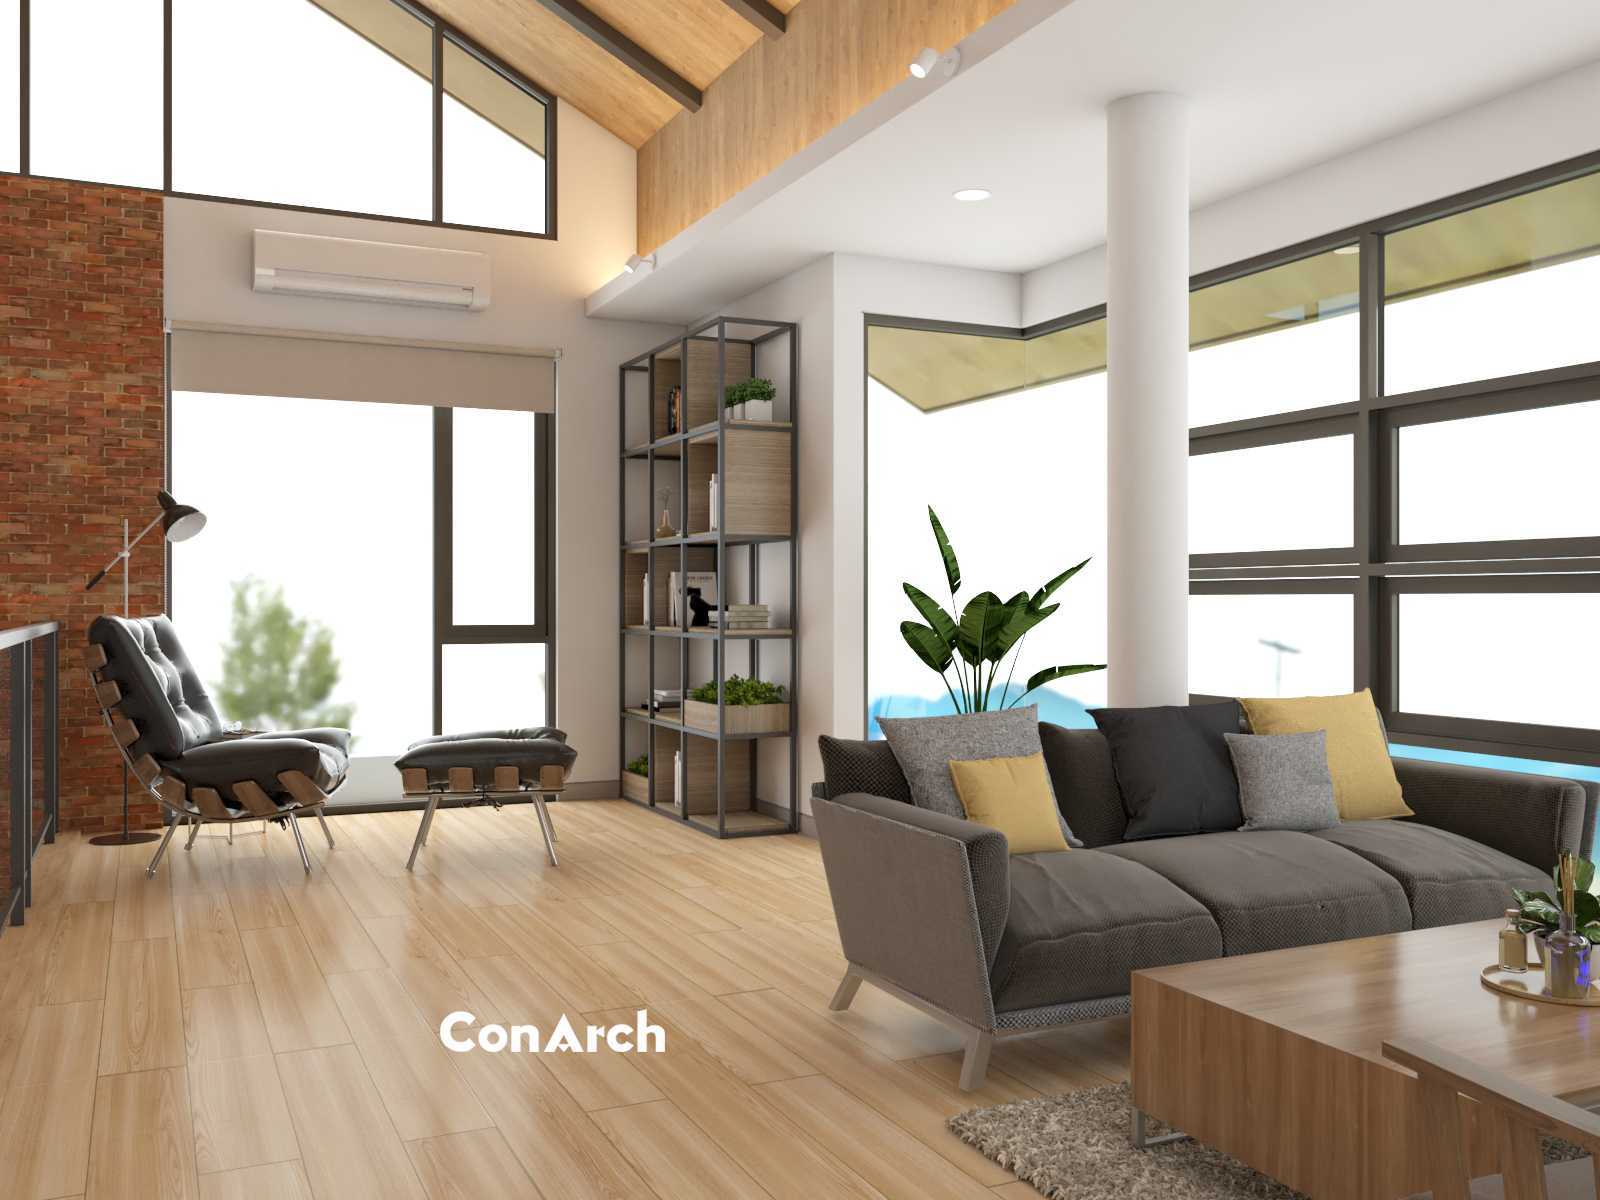 Conarch Studio A Simple House Office Yogyakarta, Kota Yogyakarta, Daerah Istimewa Yogyakarta, Indonesia Yogyakarta, Kota Yogyakarta, Daerah Istimewa Yogyakarta, Indonesia Conarch-Bangun-Sejahtera-A-Simple-House-Office   91046